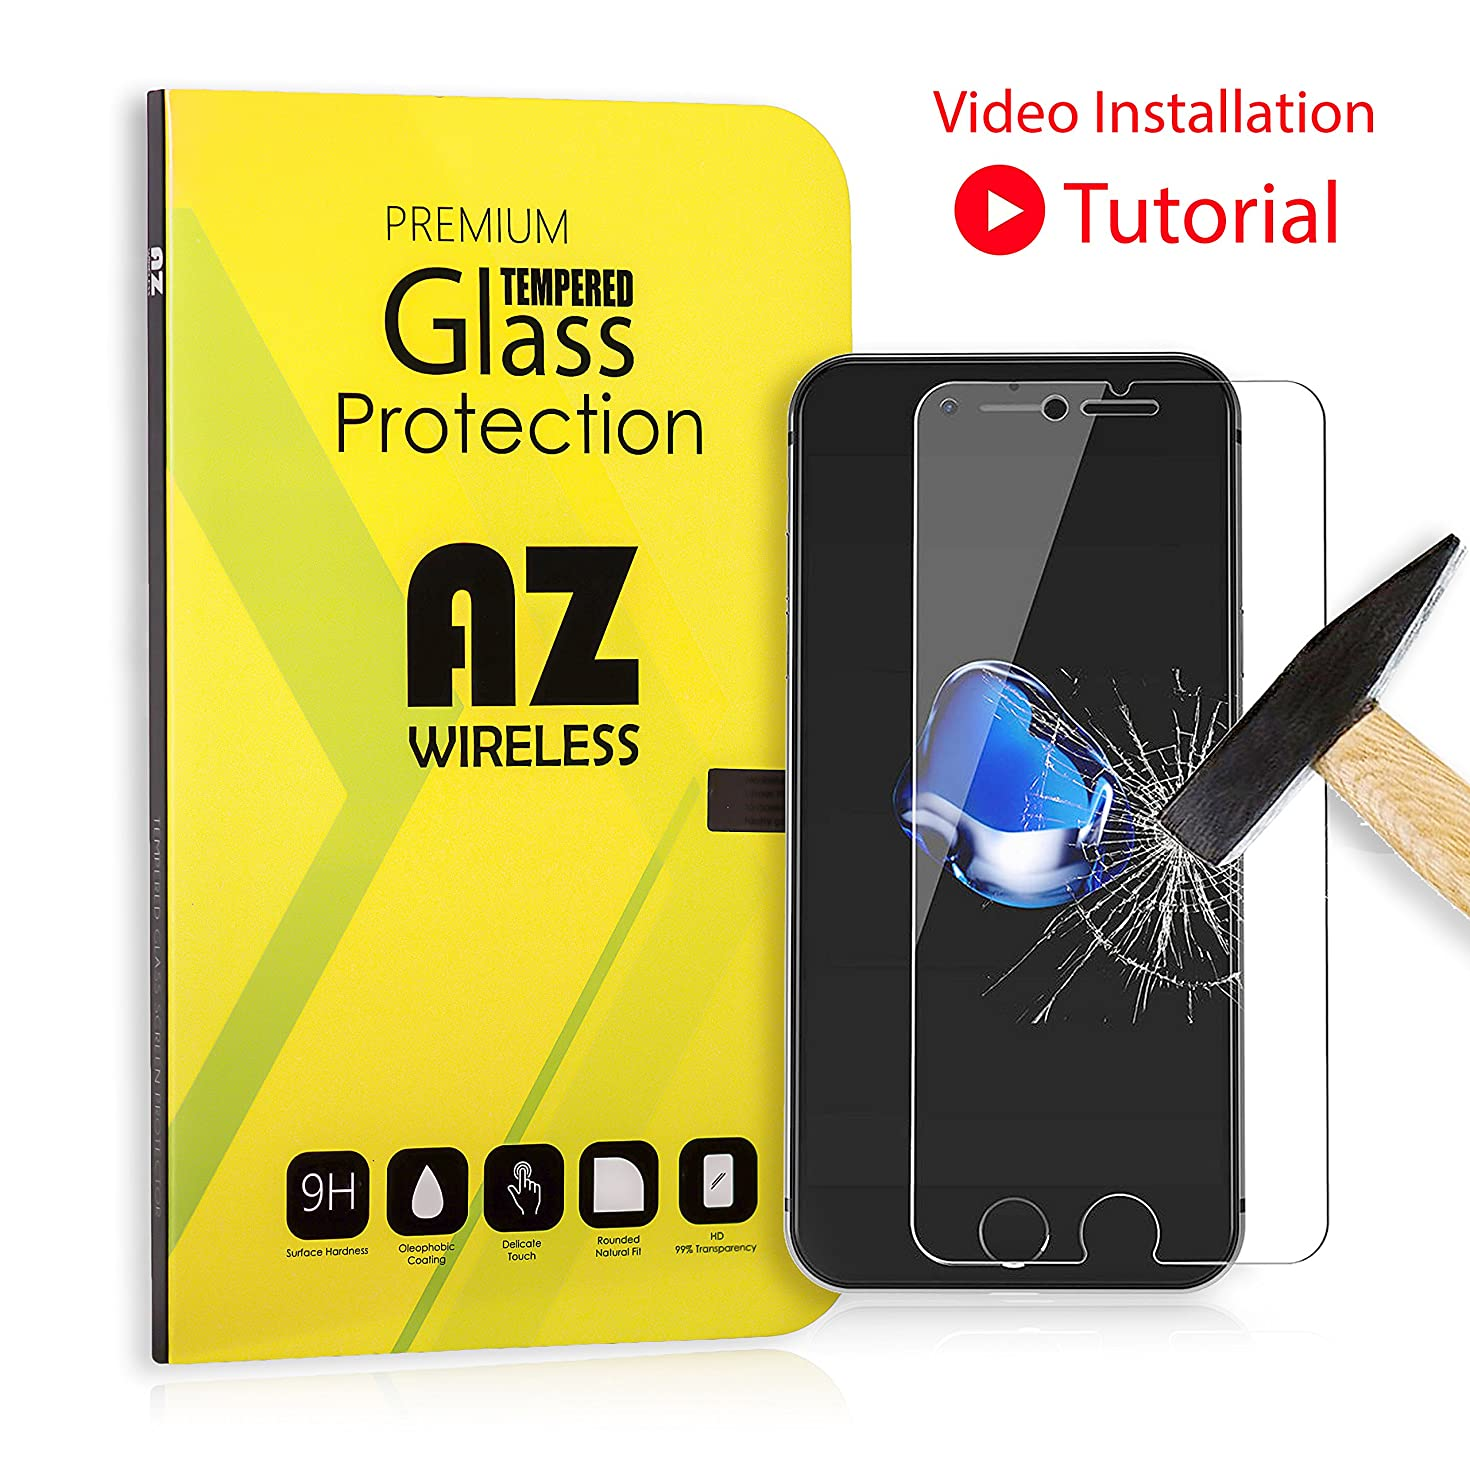 iPhone 8 Plus, 7 Plus, 6S Plus, 6 Plus Screen Protector Glass [Video Installation Tutorial] Tempered Glass Screen Protector for Apple iPhone 8+, 7+, iPhone 6S+, iPhone 6+ [5.5